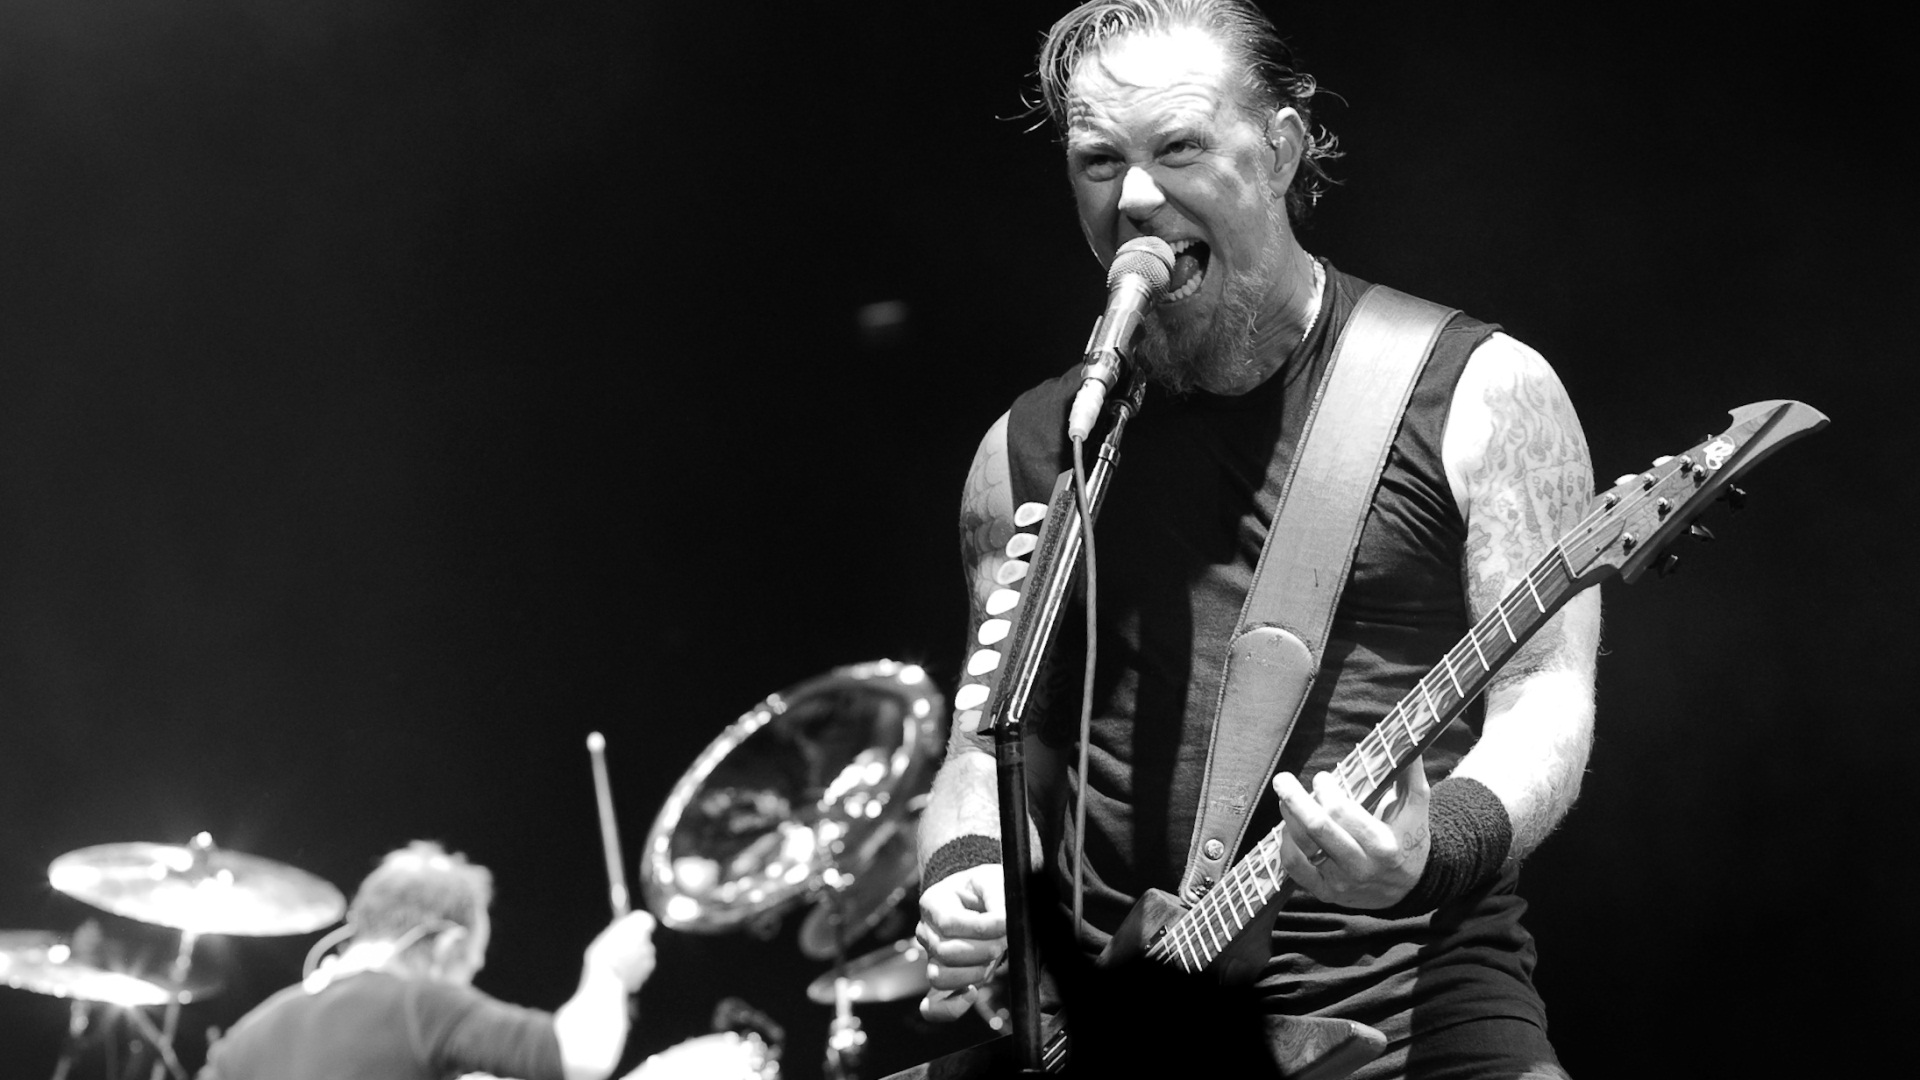 James Hetfield, Metallica - Photos from the concert